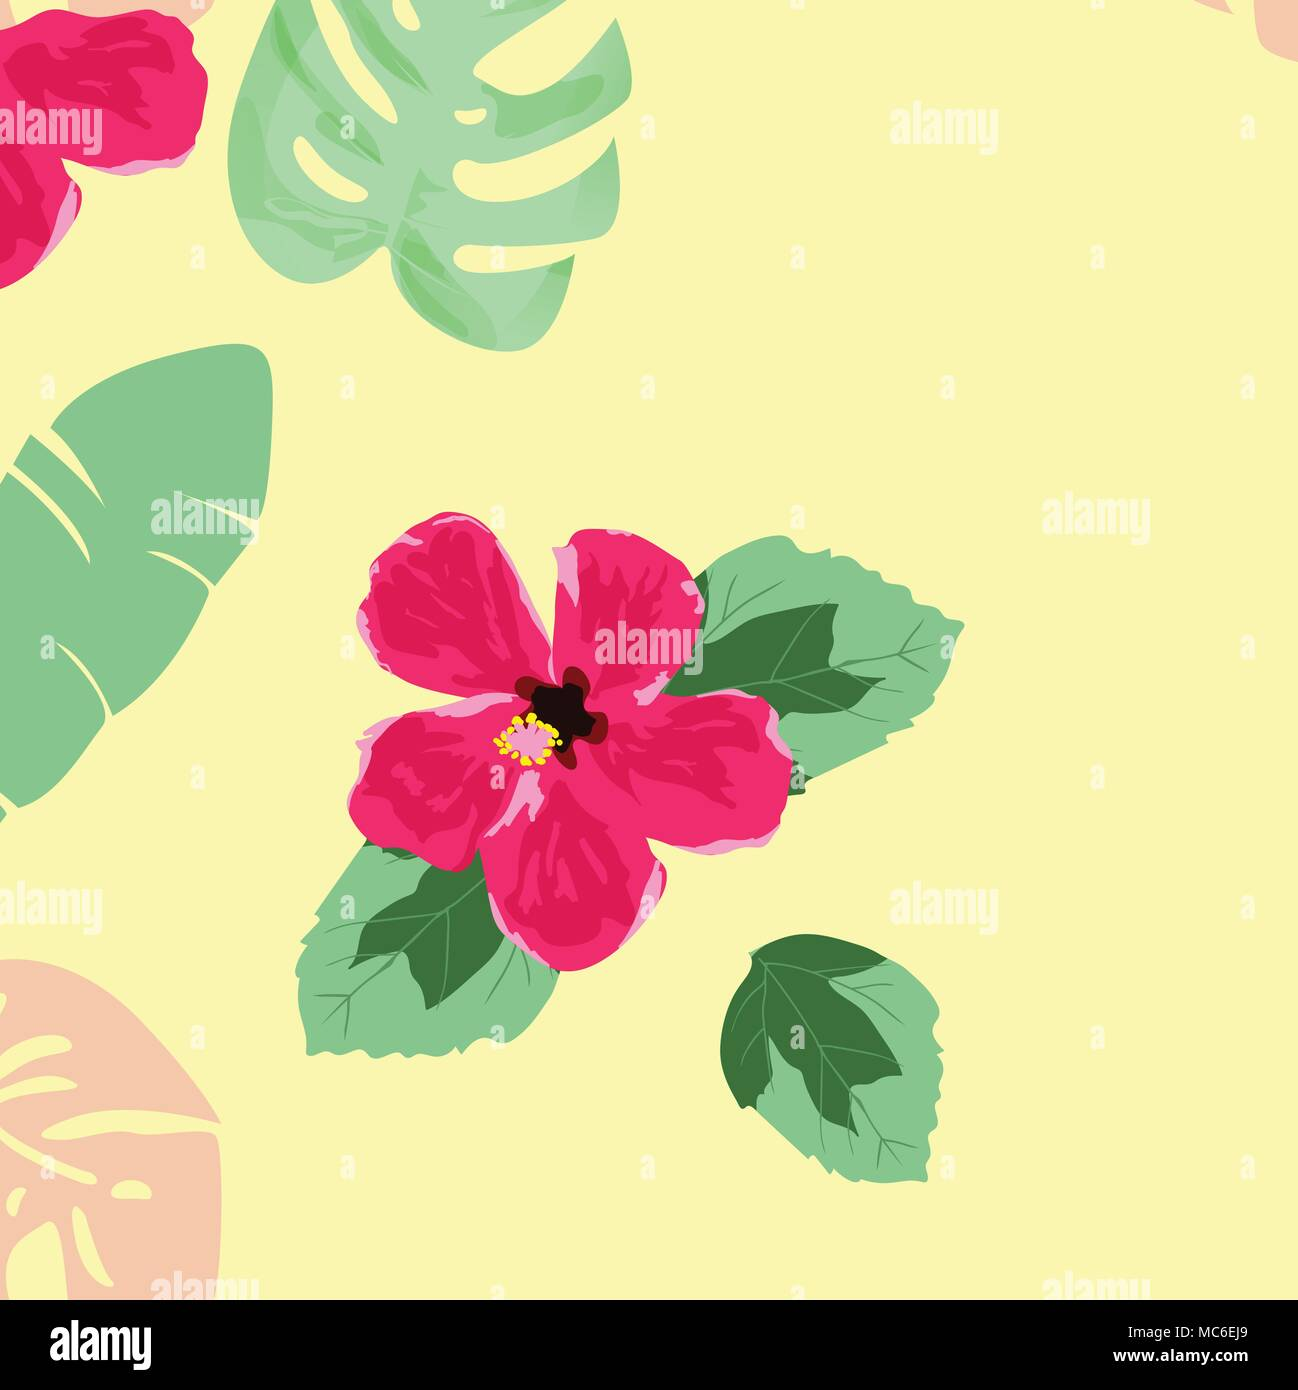 Hand draw hibiscus flower and tropical leaves seamless pattern stock hand draw hibiscus flower and tropical leaves seamless pattern izmirmasajfo